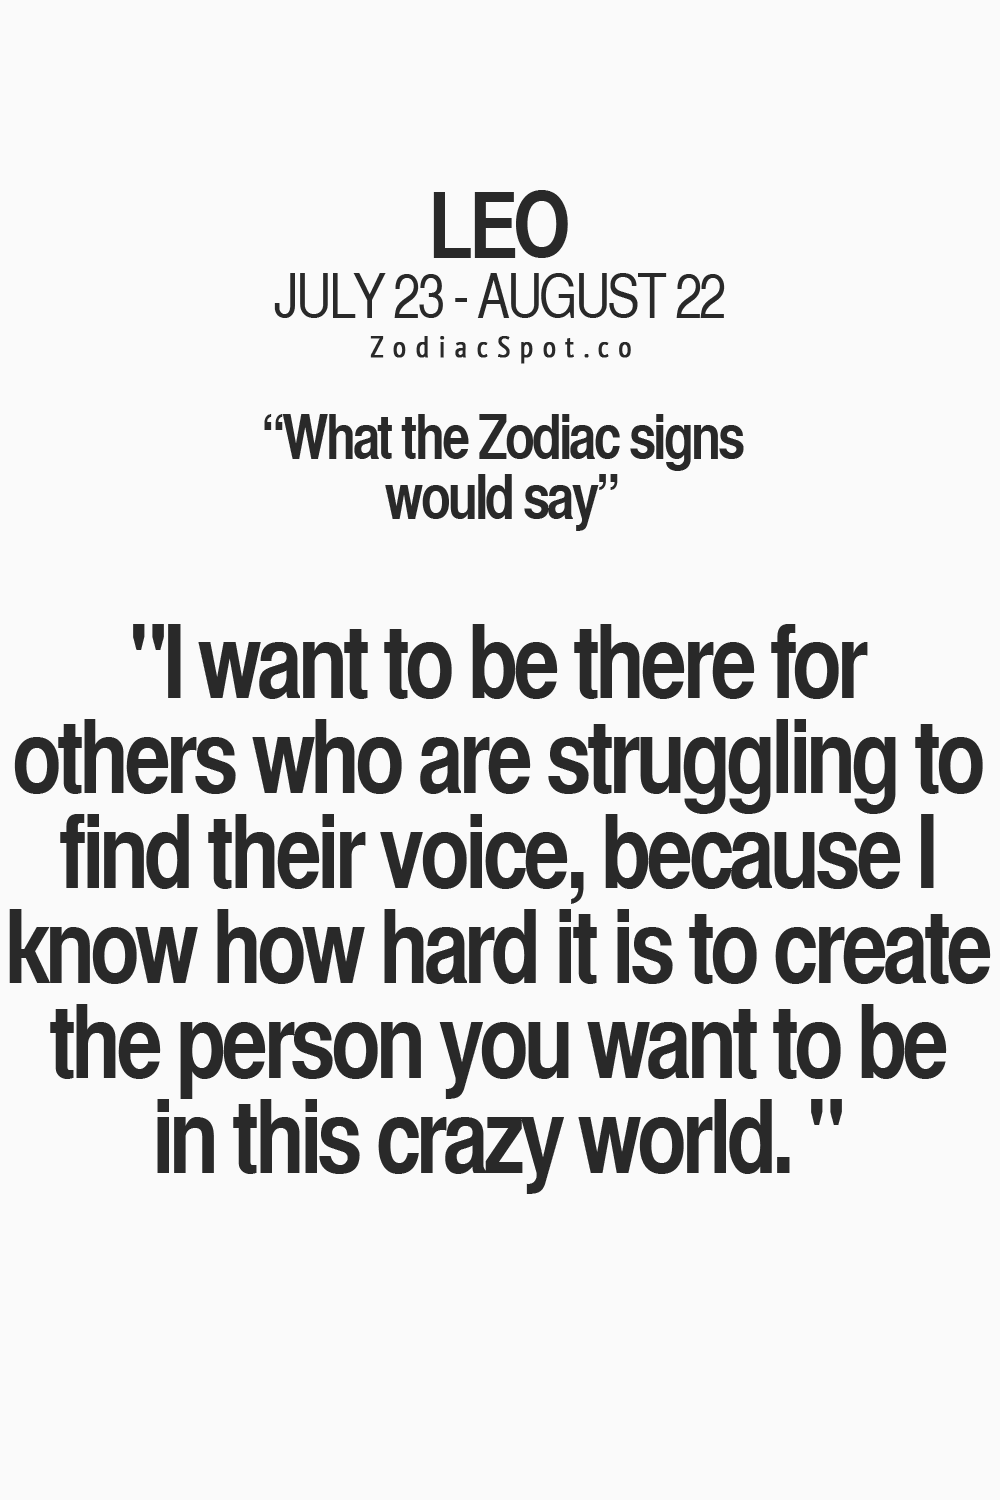 Yes and it's crazy when people think your not genuine